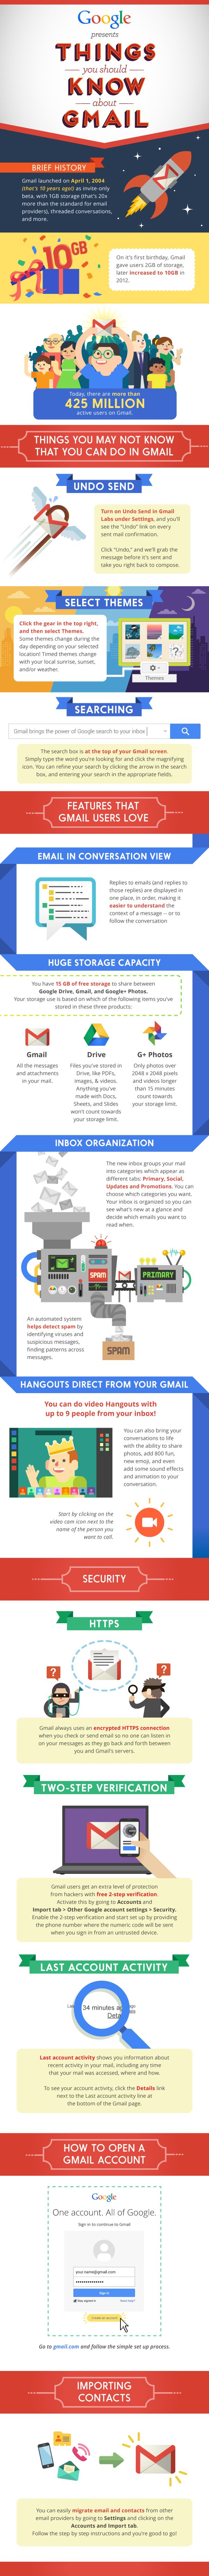 Things you should Know about Gmail   #infographic #gmail #google